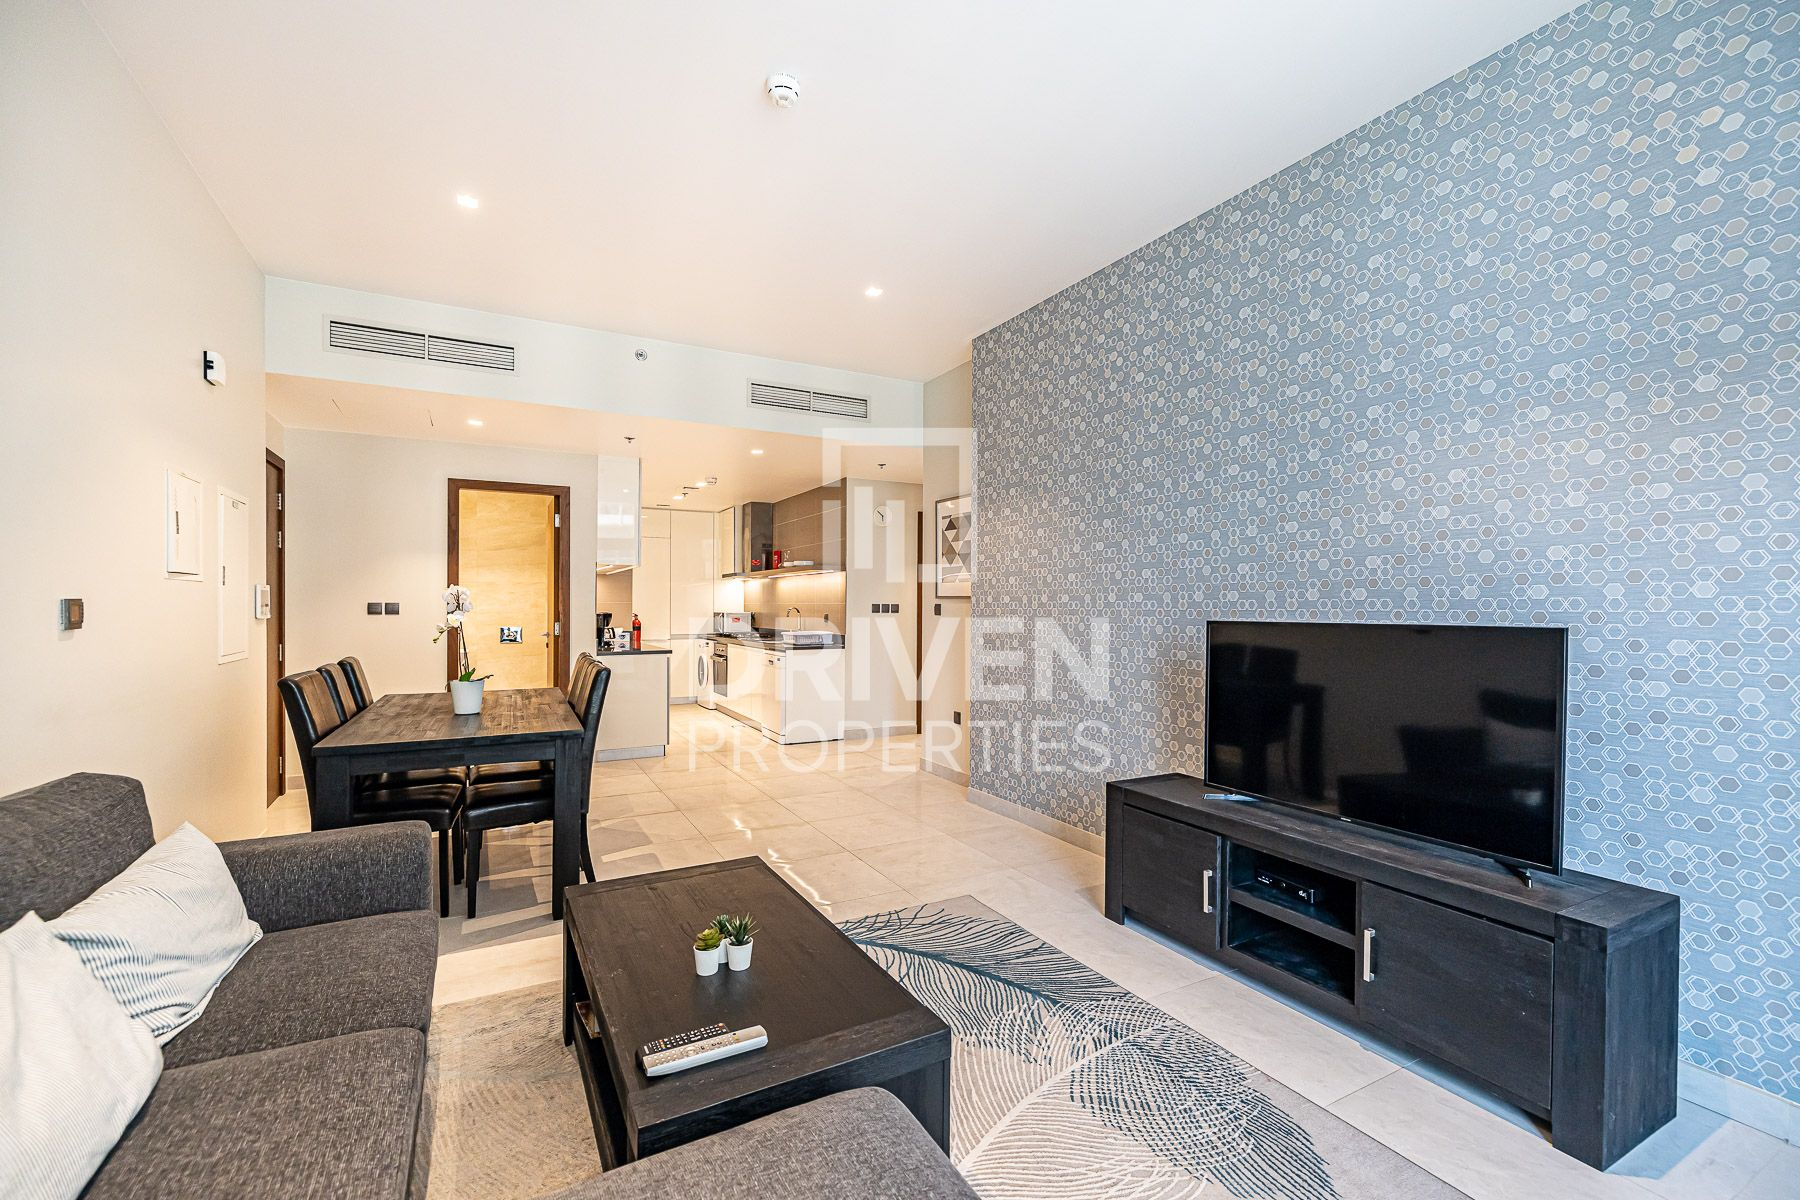 Bright and Fully Furnished Apt with Nice View